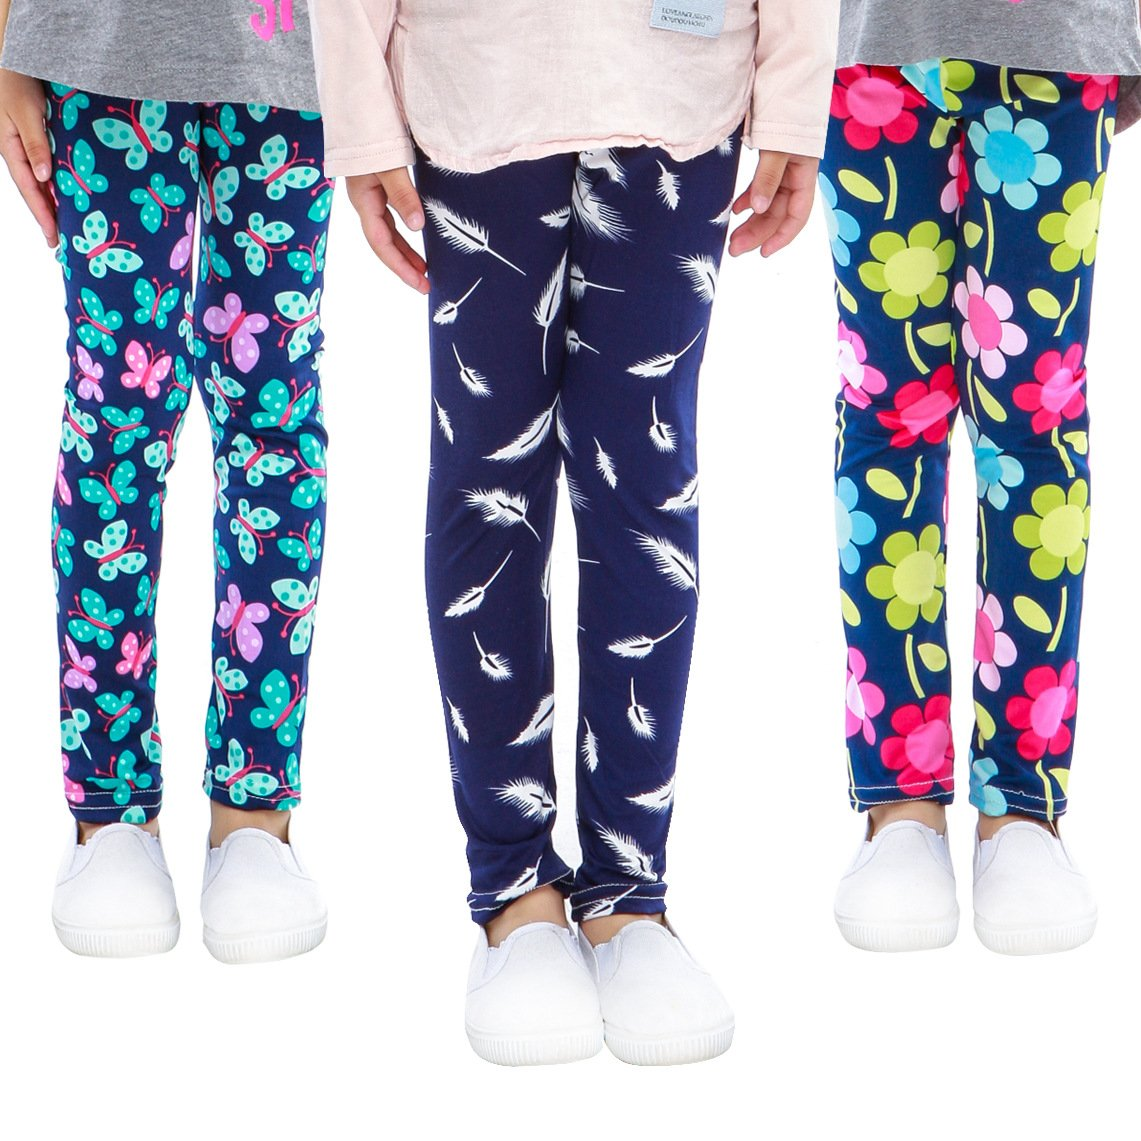 slaixiu 3-Pack Printing Flower Girl Leggings Kids Classic Pants 4-13Y(FHM_6-7,70#)